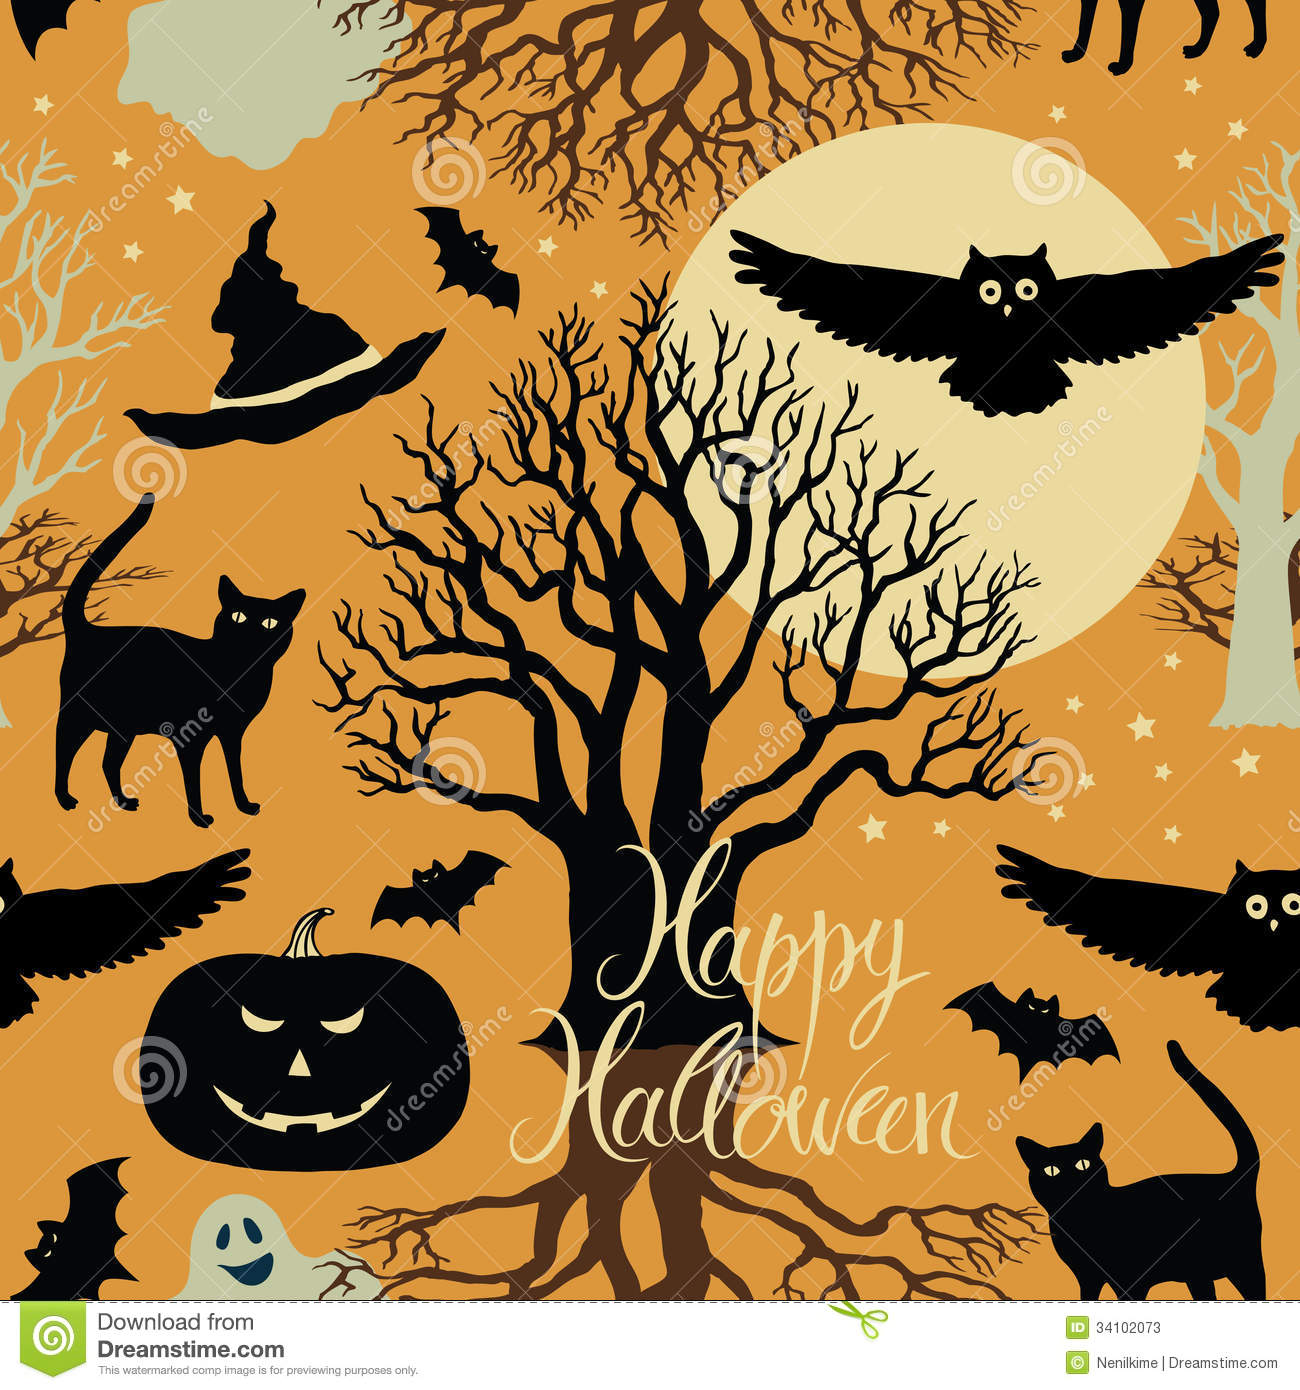 Vector halloween symbols witches pumpkins ghost stock vector happy halloween pumpkins bats and cats black tr stock photos biocorpaavc Choice Image